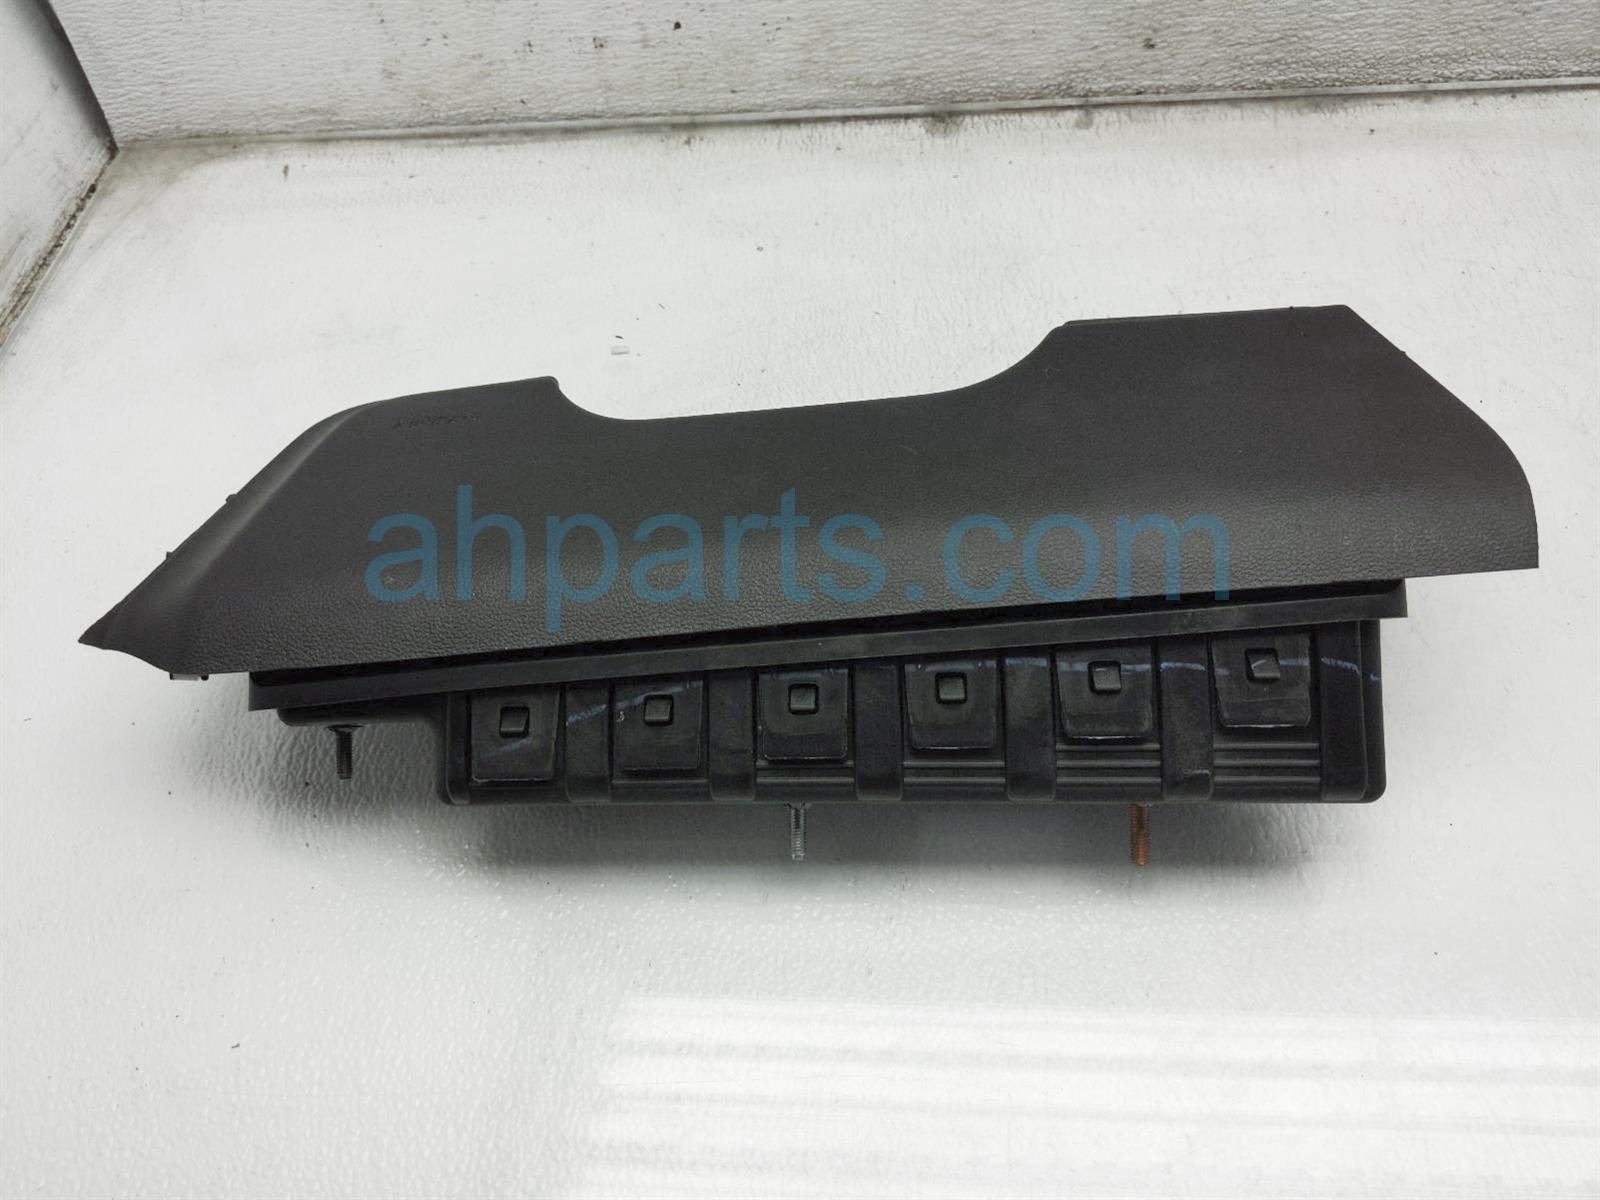 2017 Ford Mustang Airbag Driver Knee Air Bag FR3Z 63045J77 BA Replacement